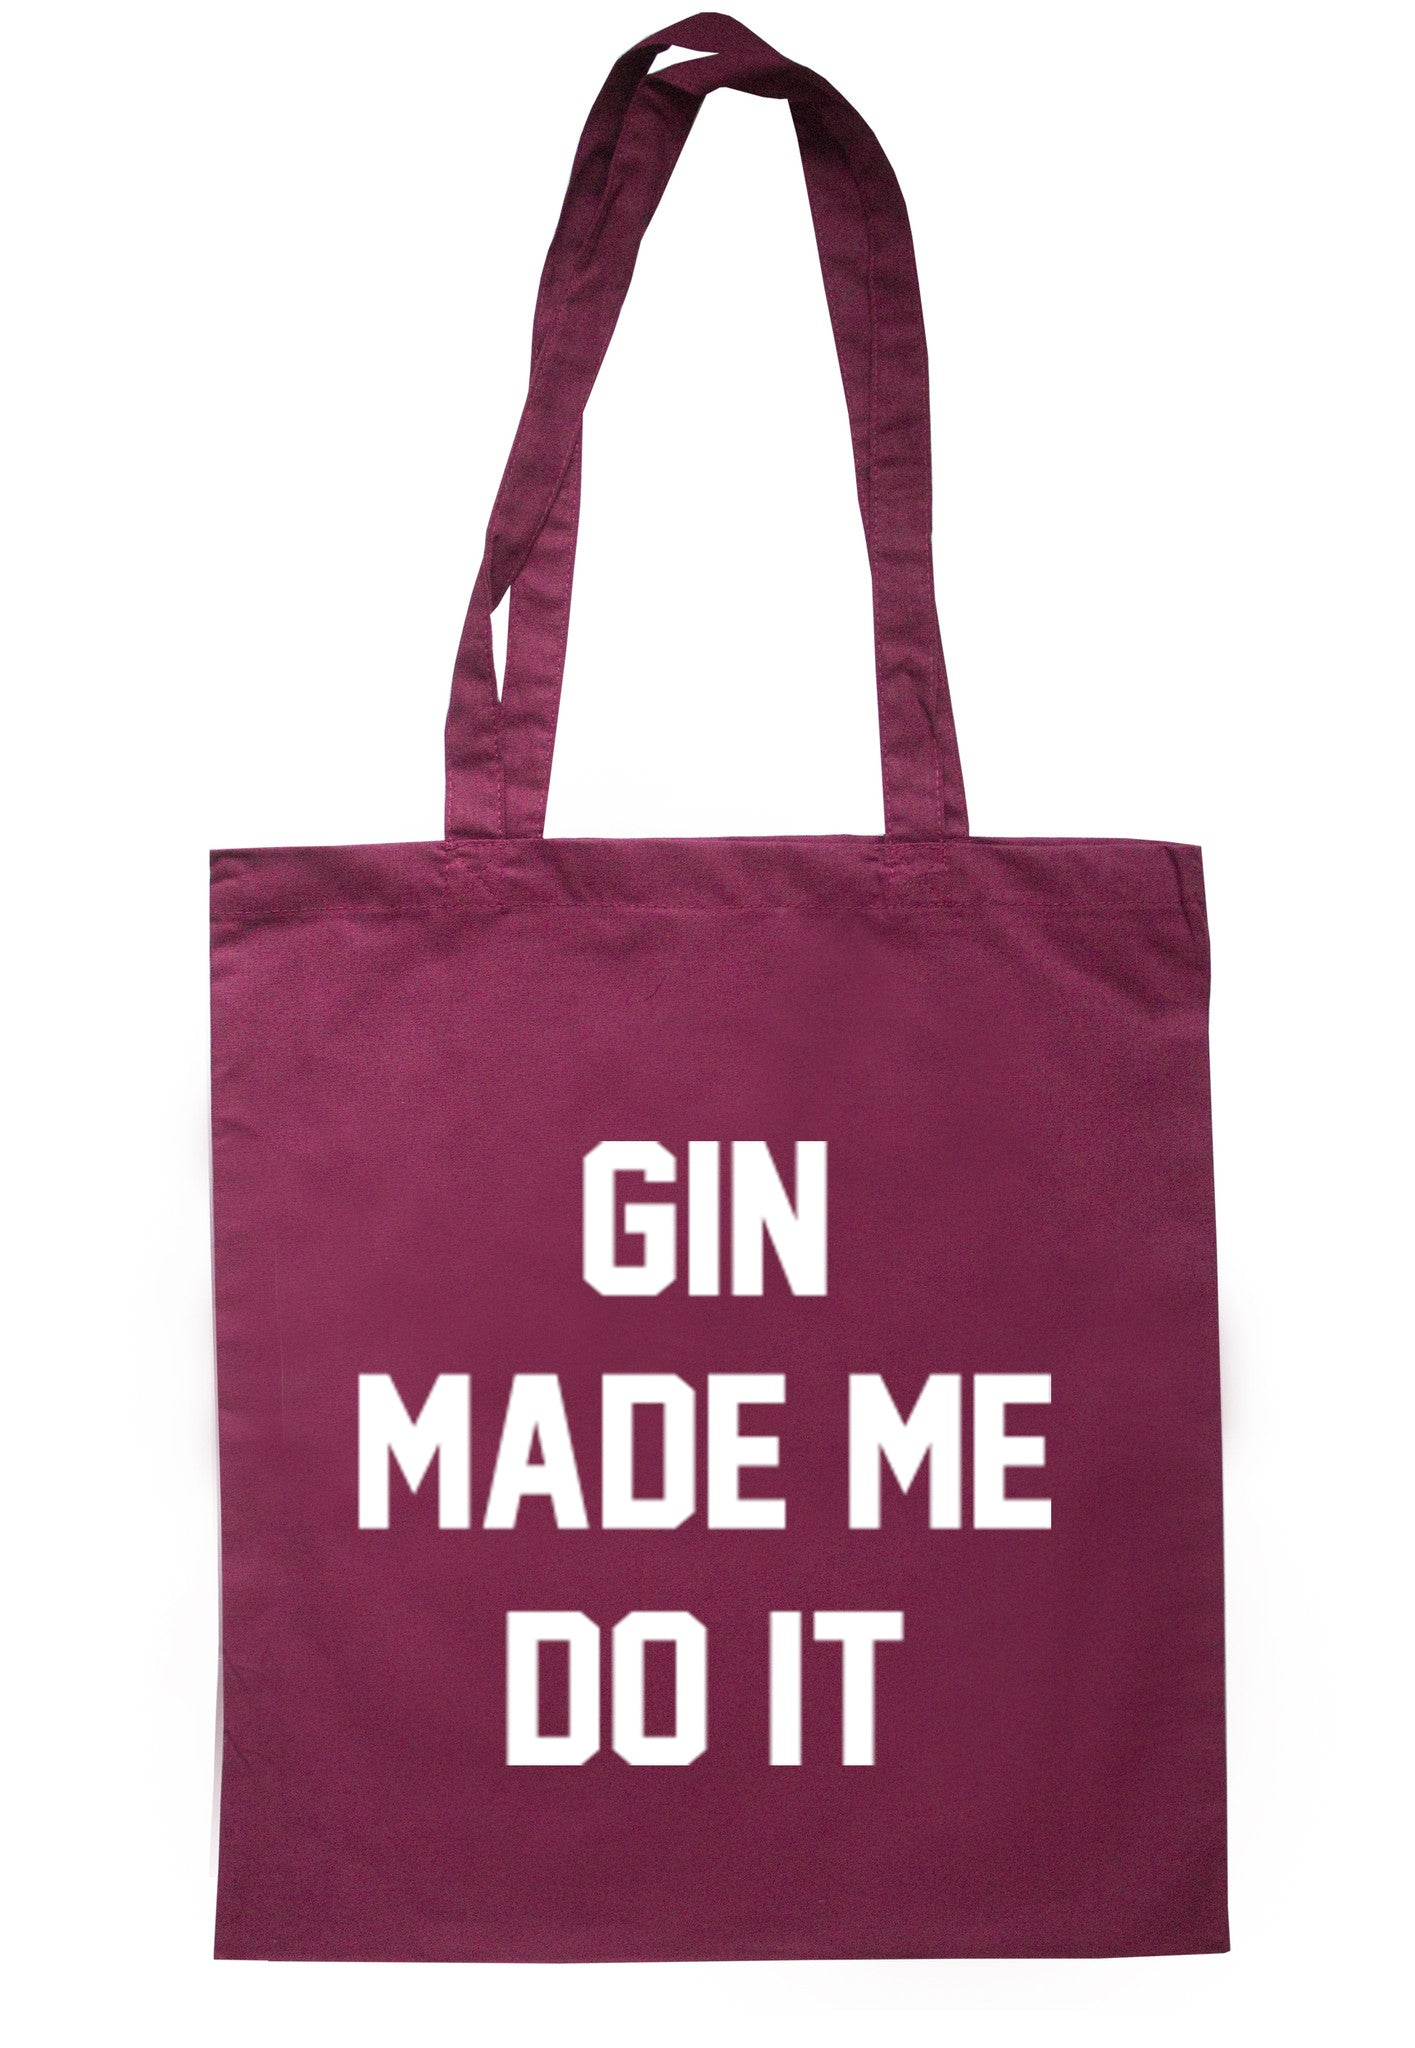 Gin Made Me Do It Tote Bag TB0019 - Illustrated Identity Ltd.